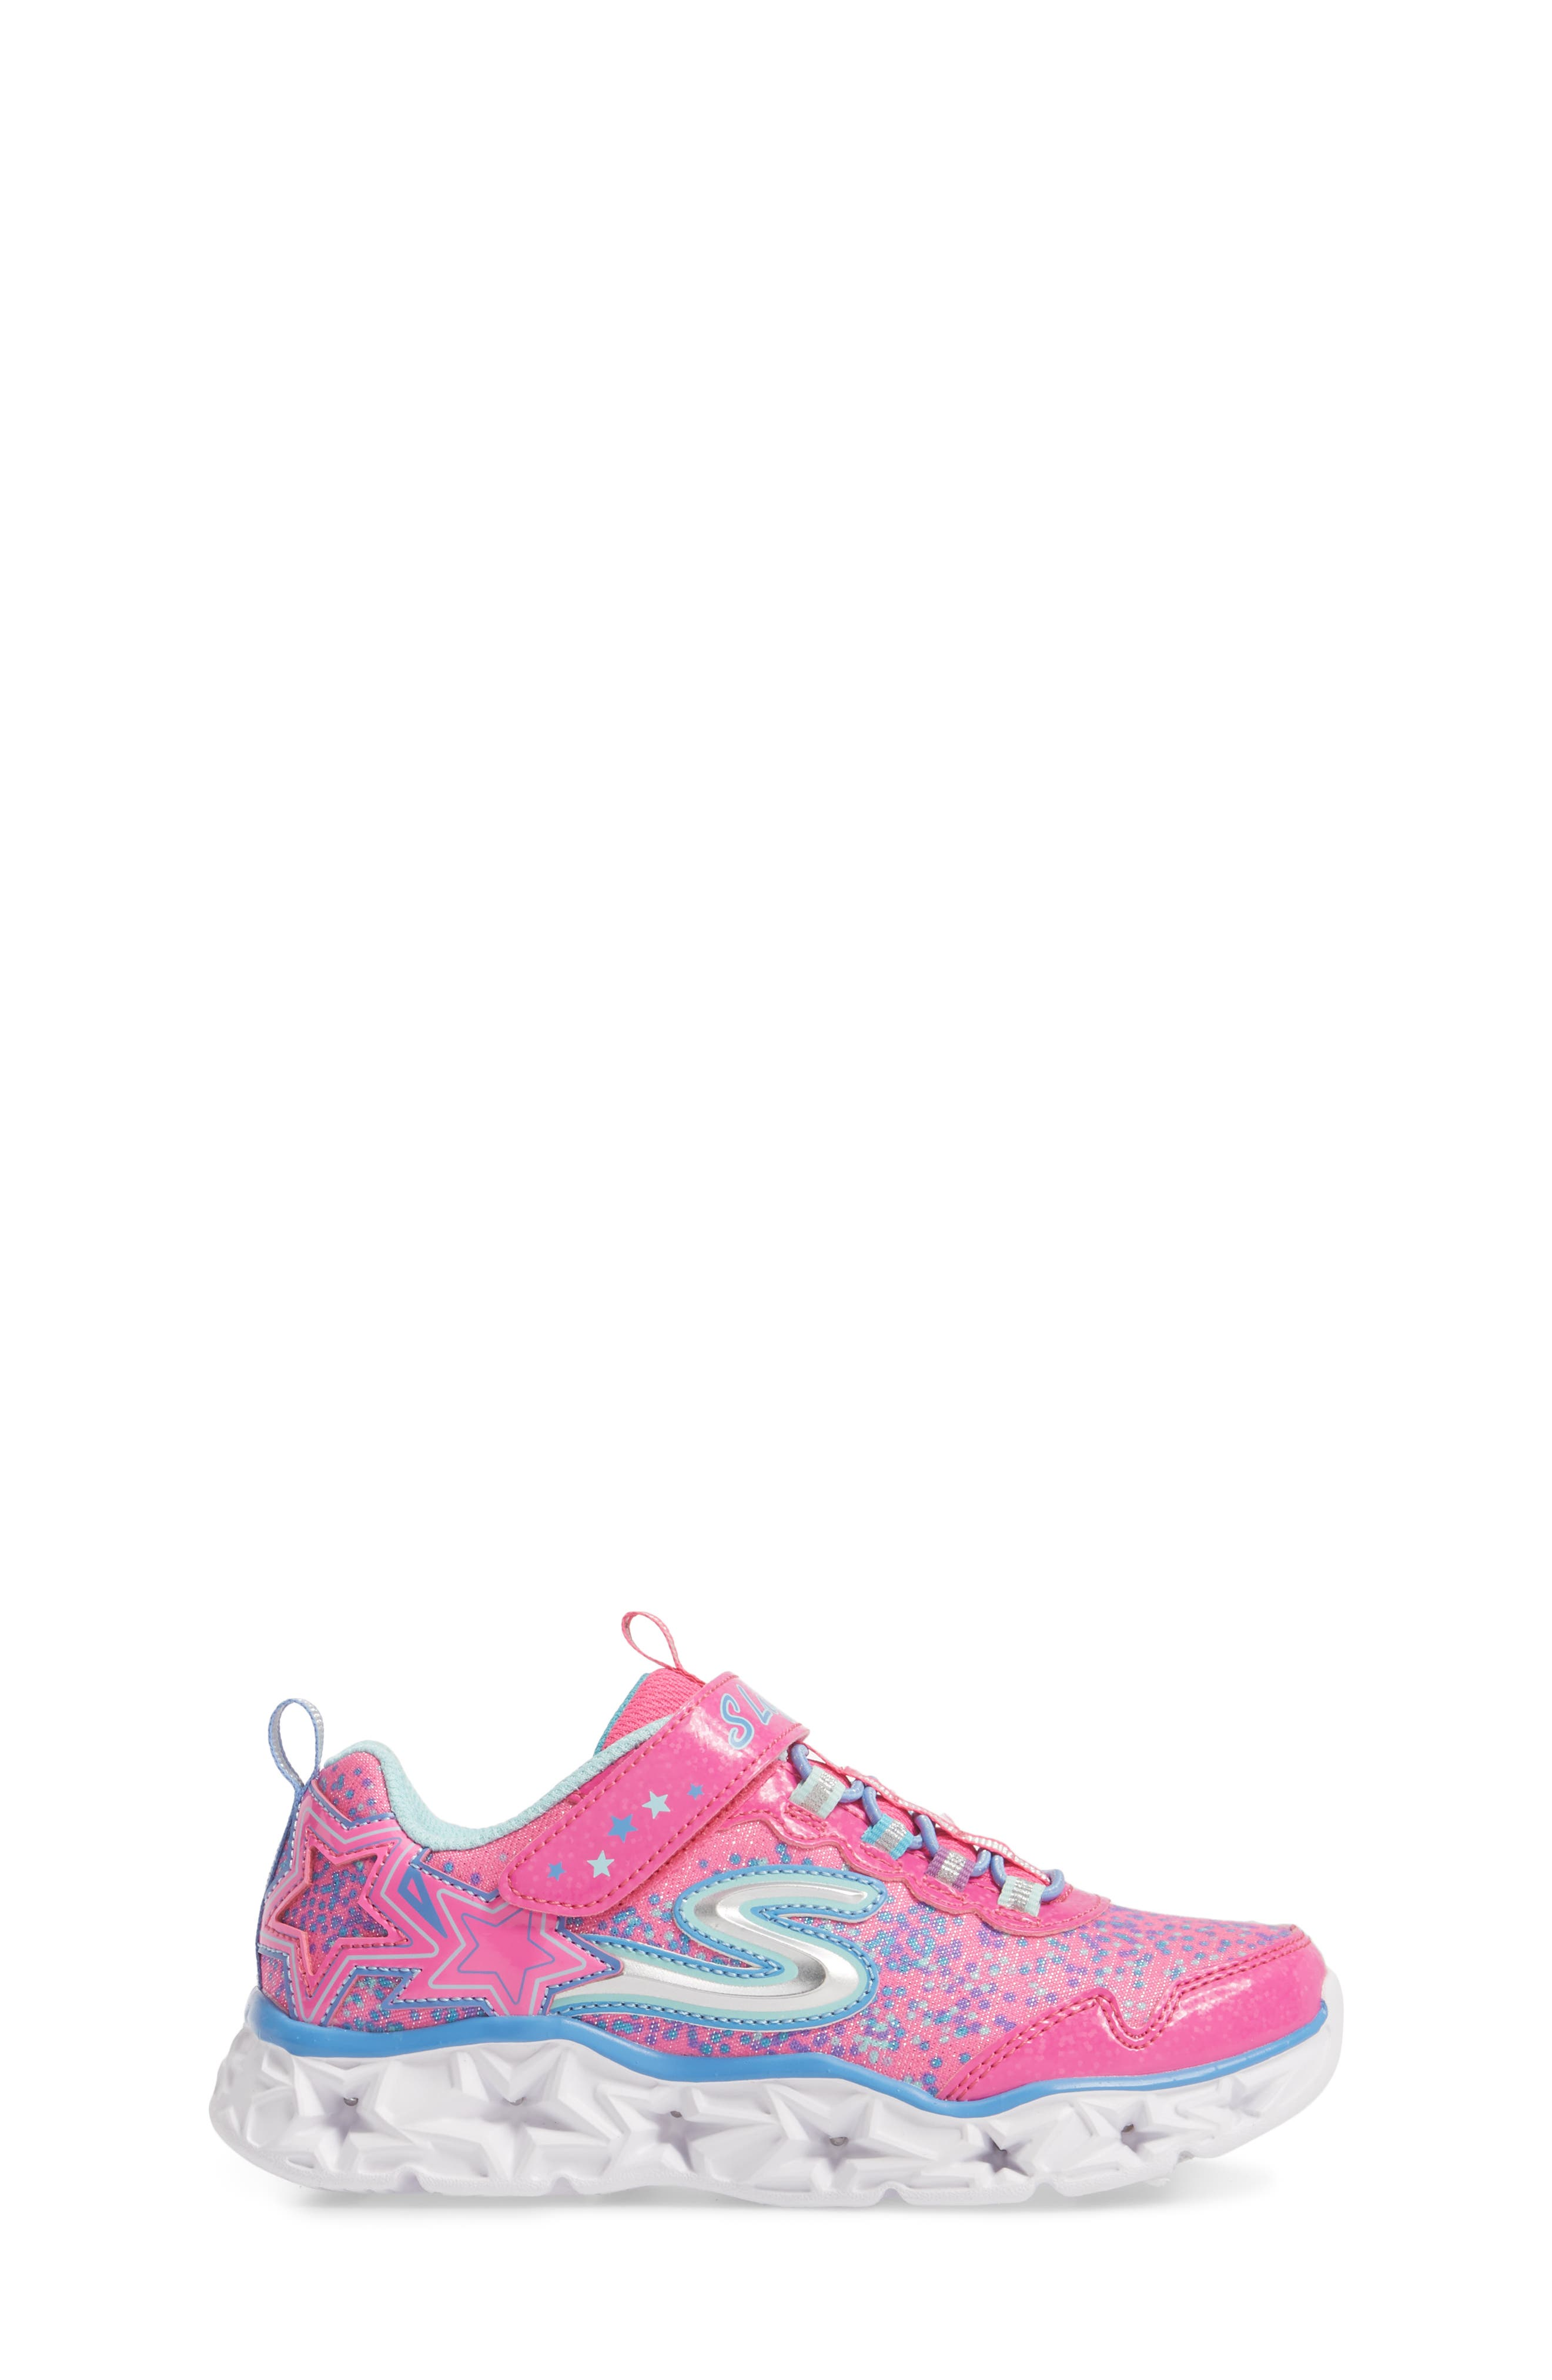 Galaxy Lights Sneakers,                             Alternate thumbnail 3, color,                             650